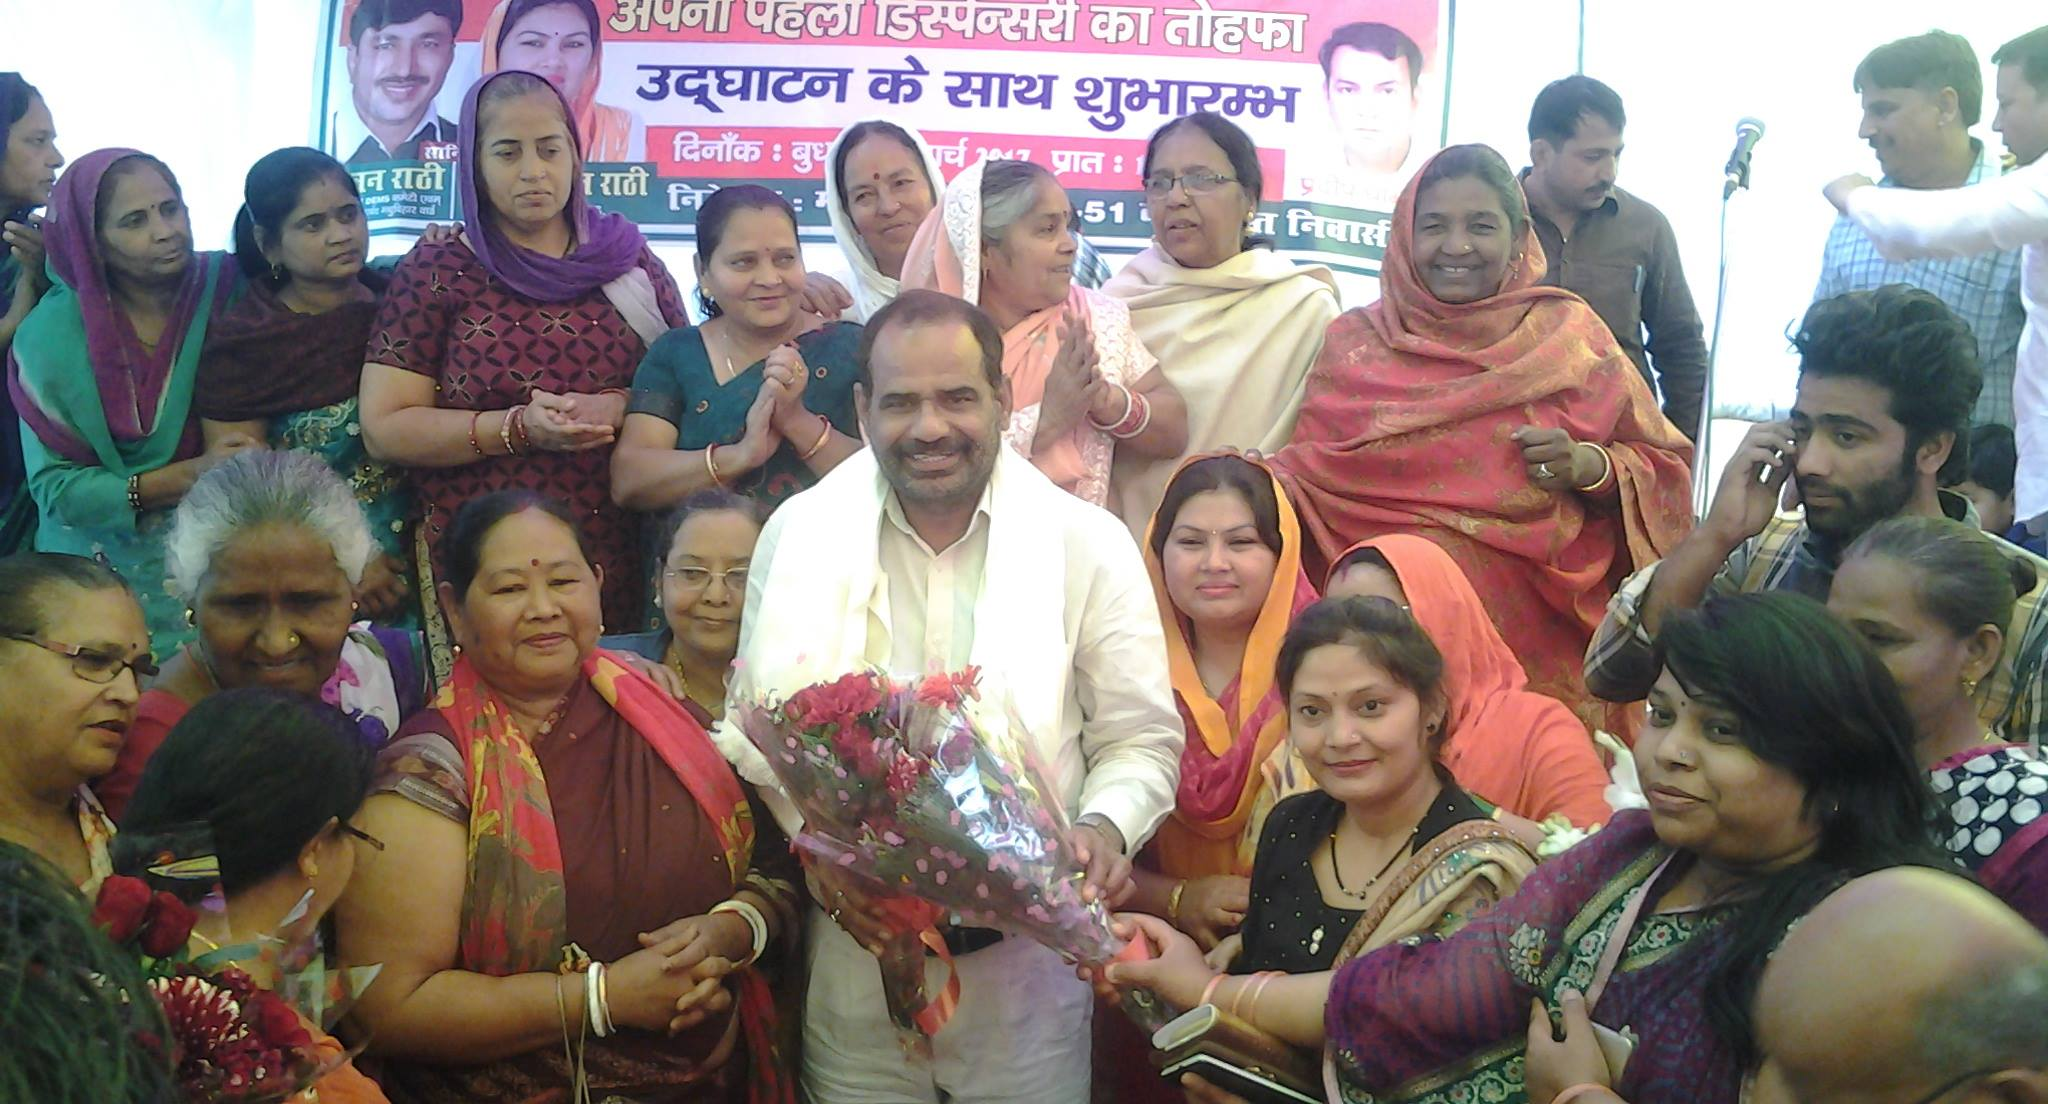 8/3/17 Inauguration of Community Center & Dispensary in South Delhi Parliamentary Constituency